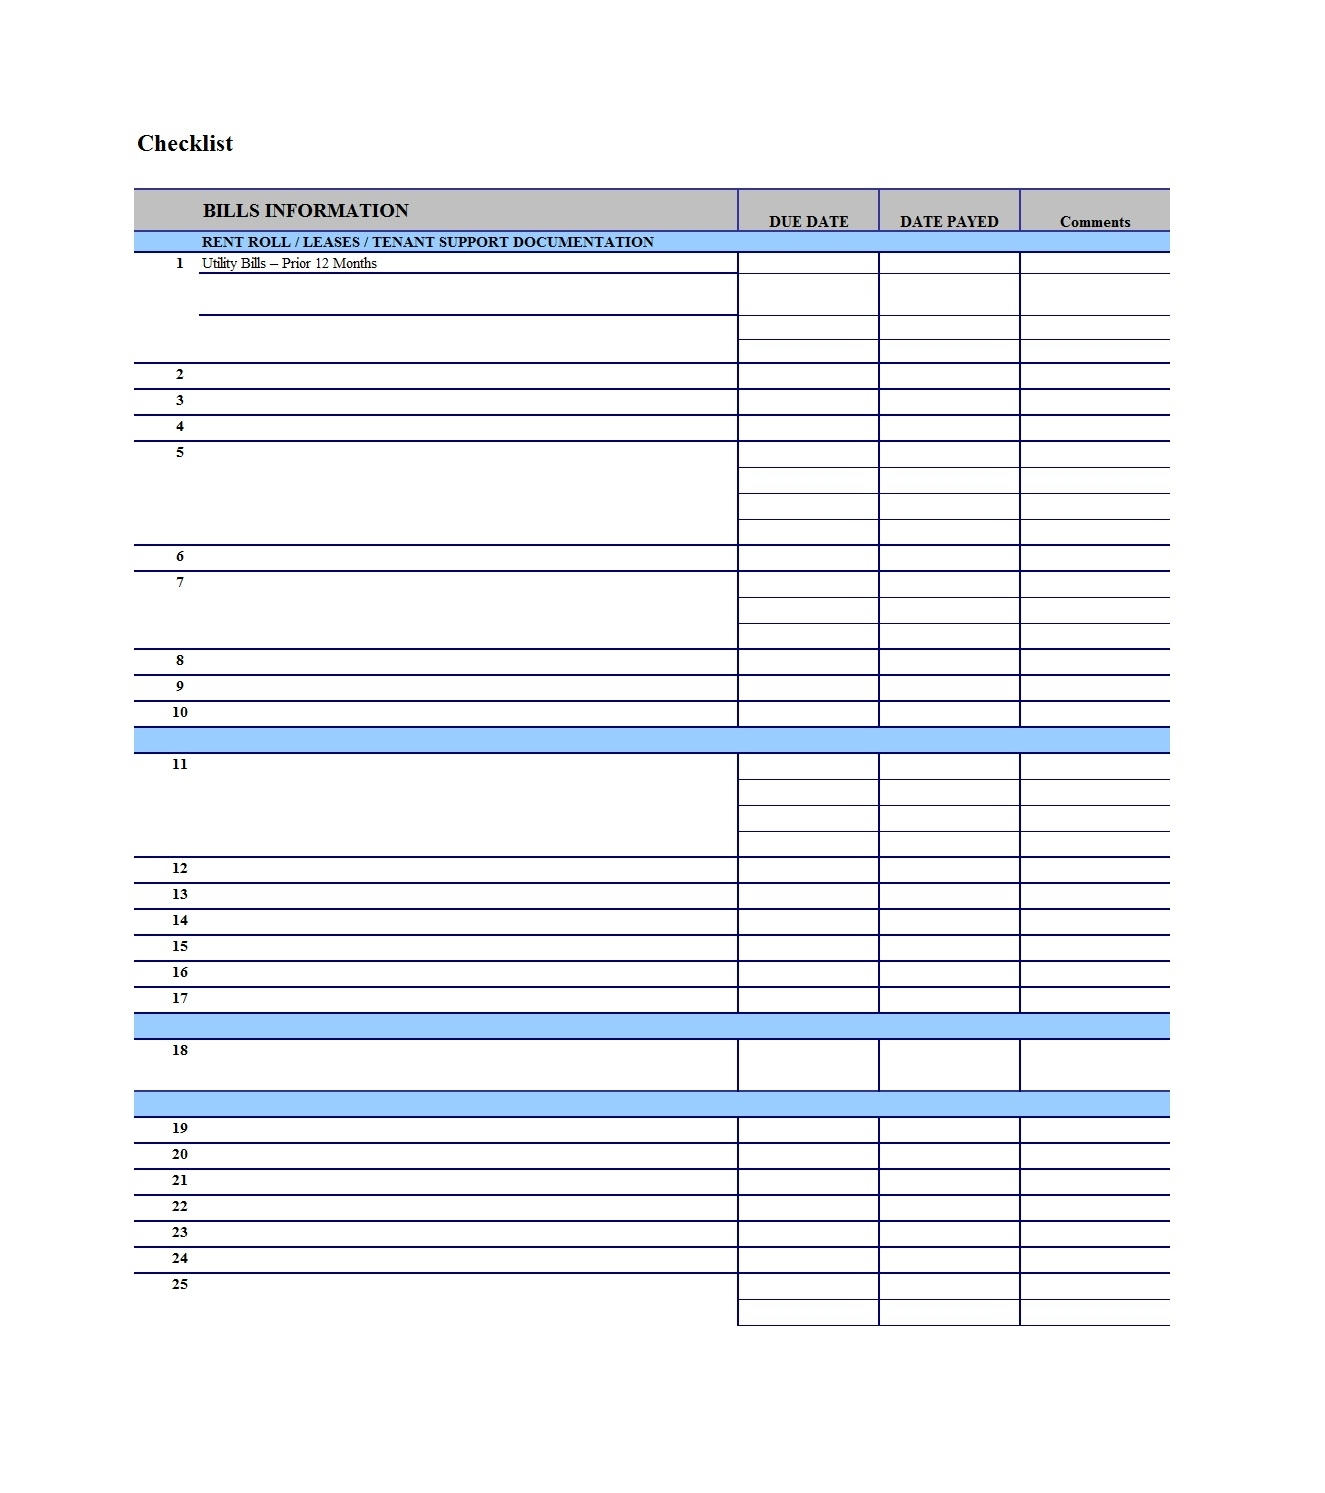 32 Free Bill Pay Checklists & Bill Calendars (Pdf, Word & Excel) for Free Printable Monthly Household Bills Due Form